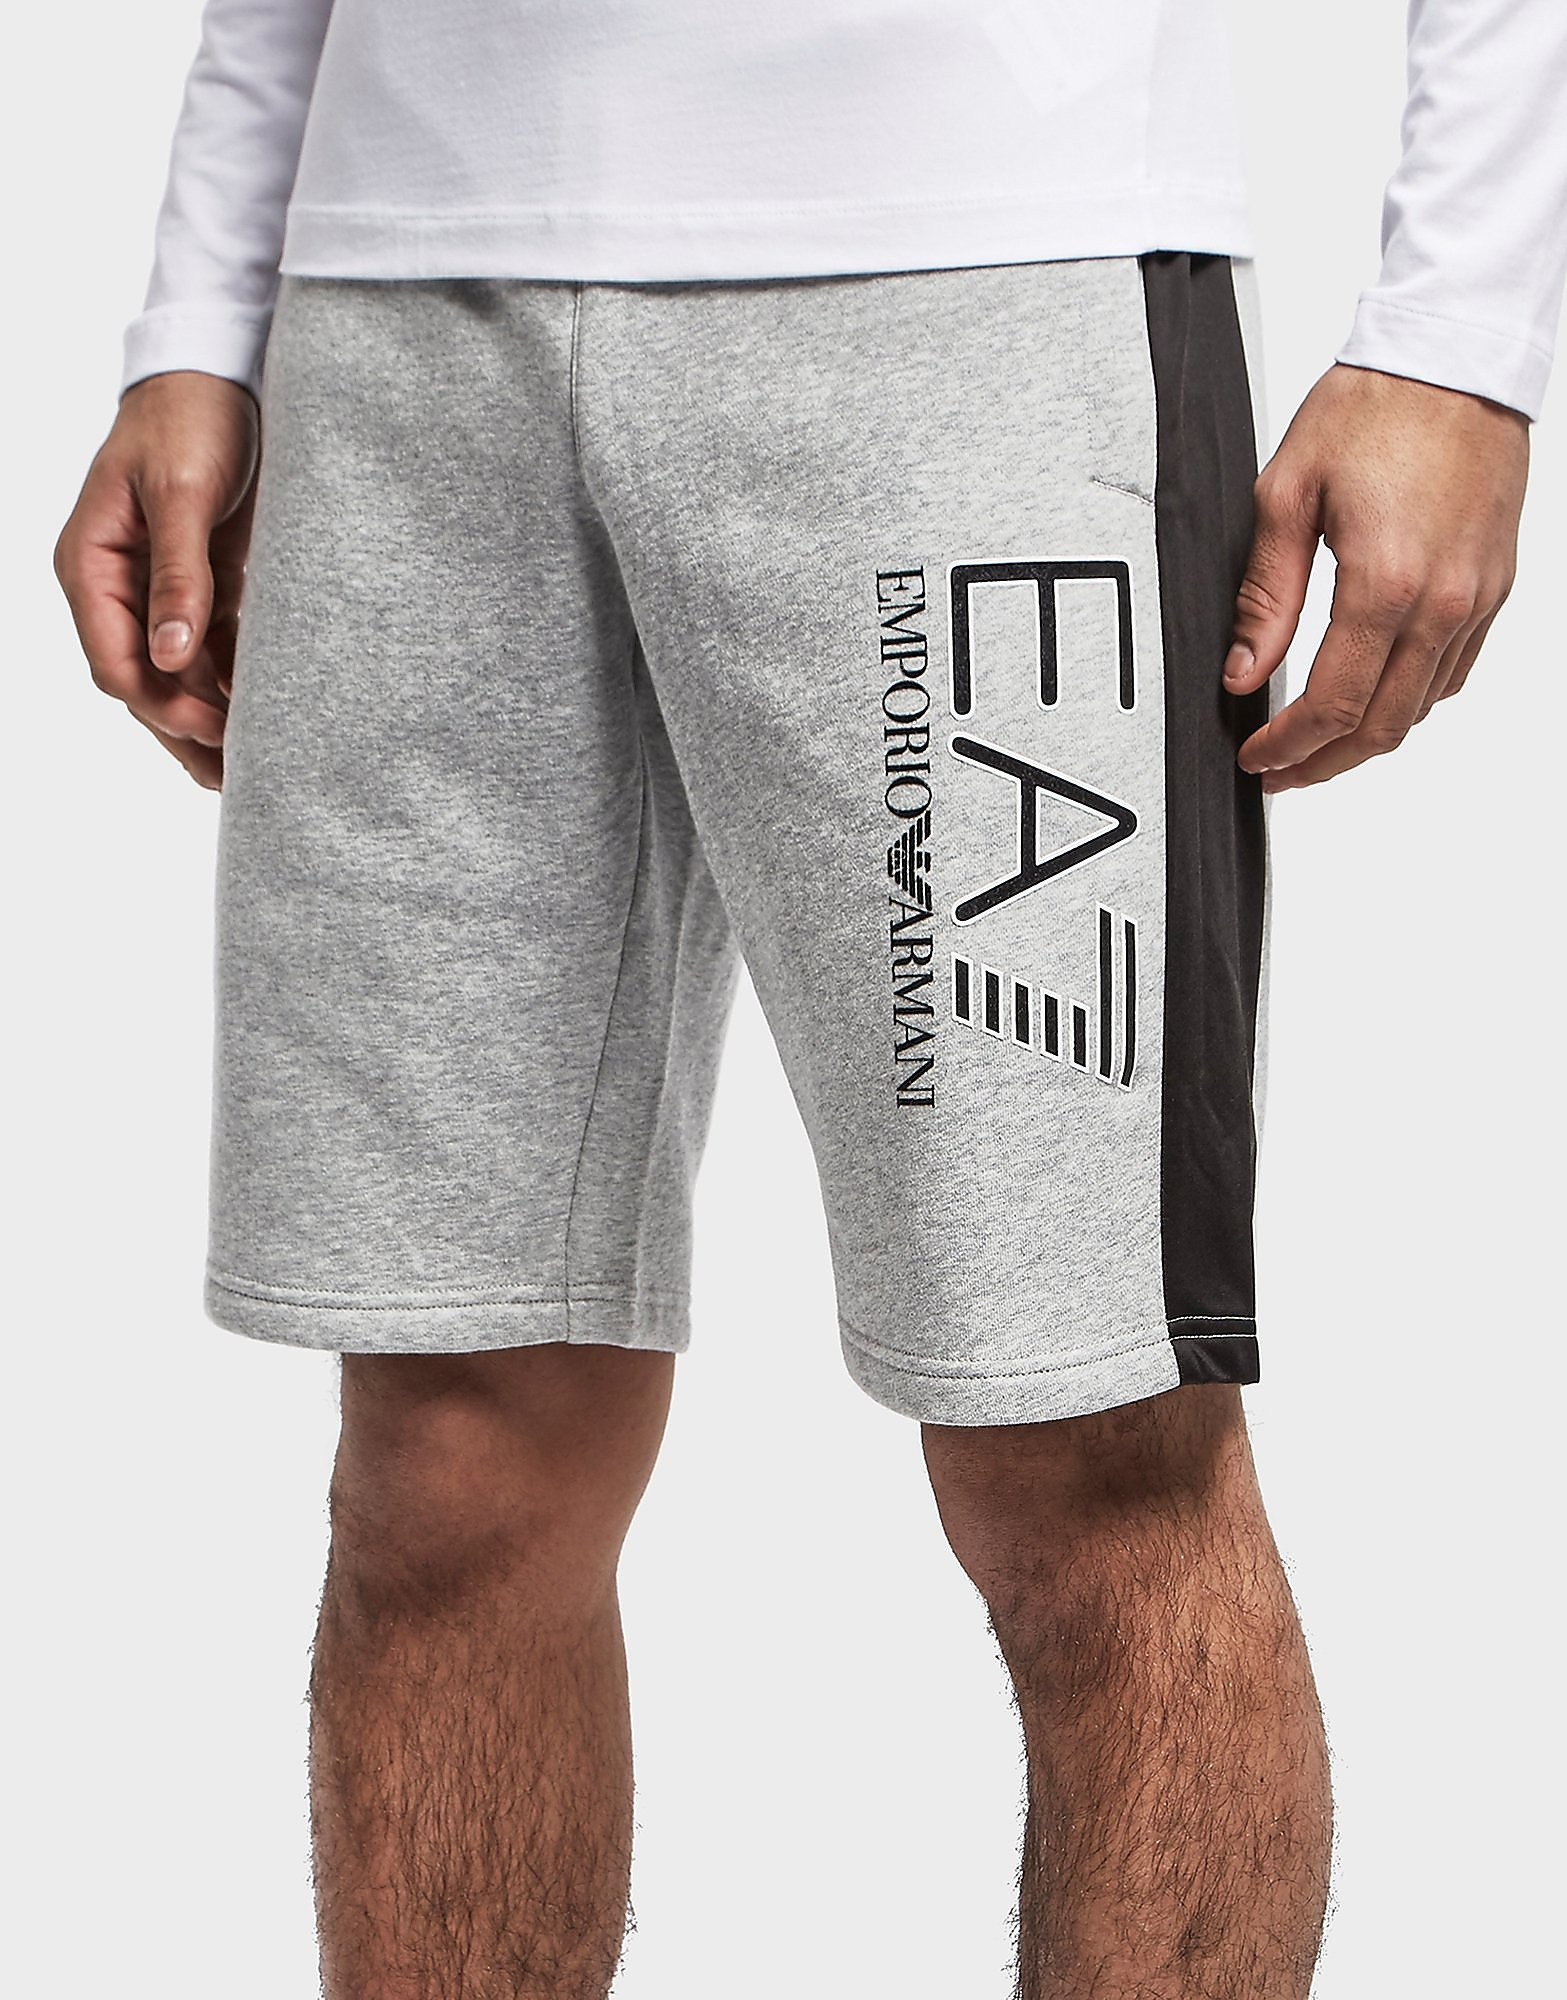 Emporio Armani EA7 259 Fleece Short - Exclusive